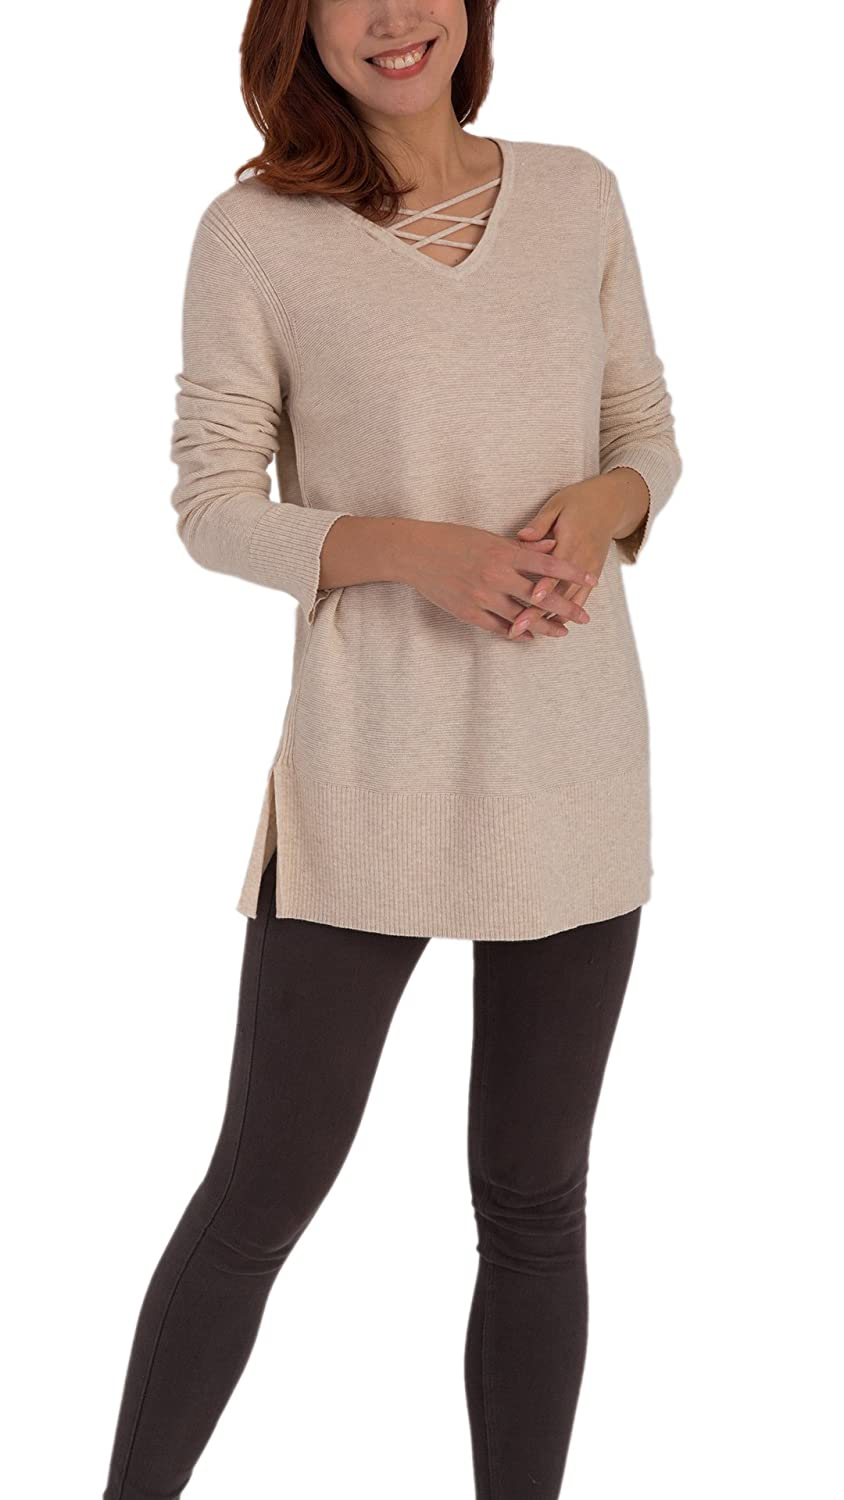 TEX & FREE Women Crisscross V Neck Regular Fit Pullover Side Slit Wool Sweater Top Anntex textile Co. Ltd.